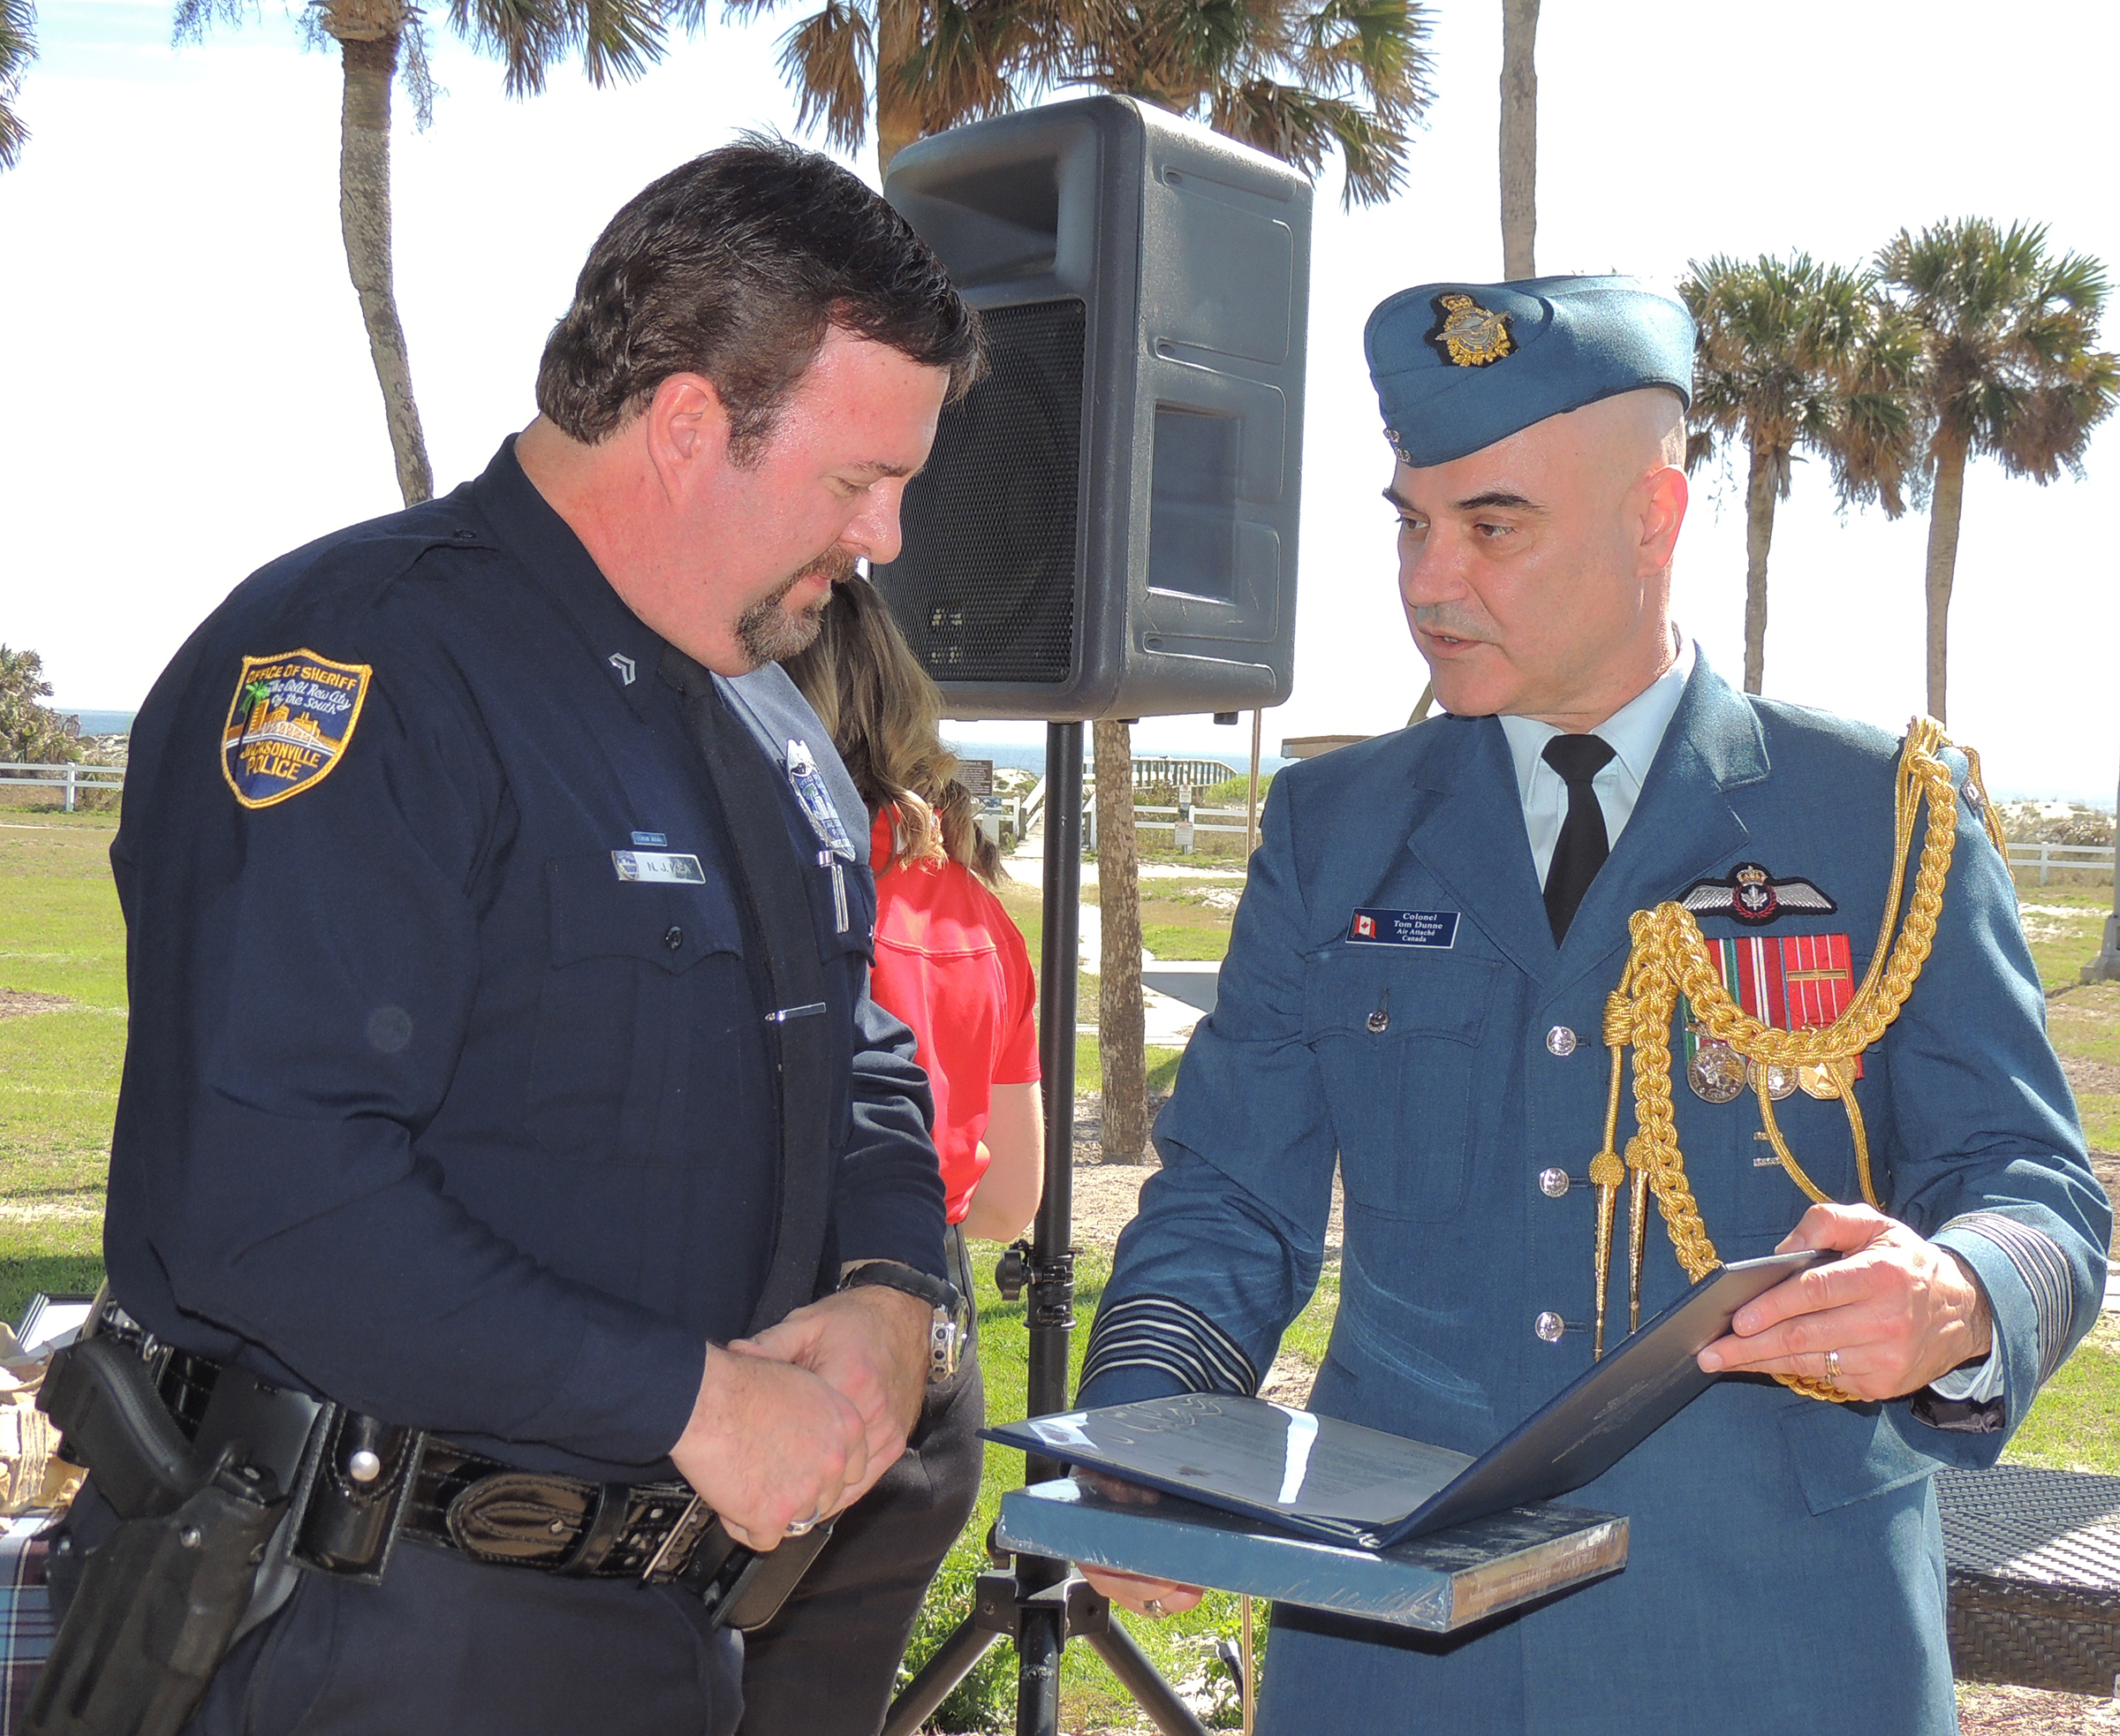 Colonel Tom Dunne (right), the Canadian air attaché at the Canadian Embassy in Washington, presents a letter of thanks signed by the commander of the Royal Canadian Air Force, Lieutenant-General Michael Hood, to Officer Nolan Kea of the Jacksonville Sheriff's Office. Officer Kea worked with Ranger Johnson to verify that the bundle of artifacts that Ranger Johnson discovered on the beach had belonged to Lieutenant Barry Troy. Officer Kea then notified the Embassy of Canada in Washington and held the items in secure storage until the transfer of the artifacts to the Royal Canadian Air Force, which occurred on February 26, 2018. PHOTO: Joanna Calder, RCAF public affairs